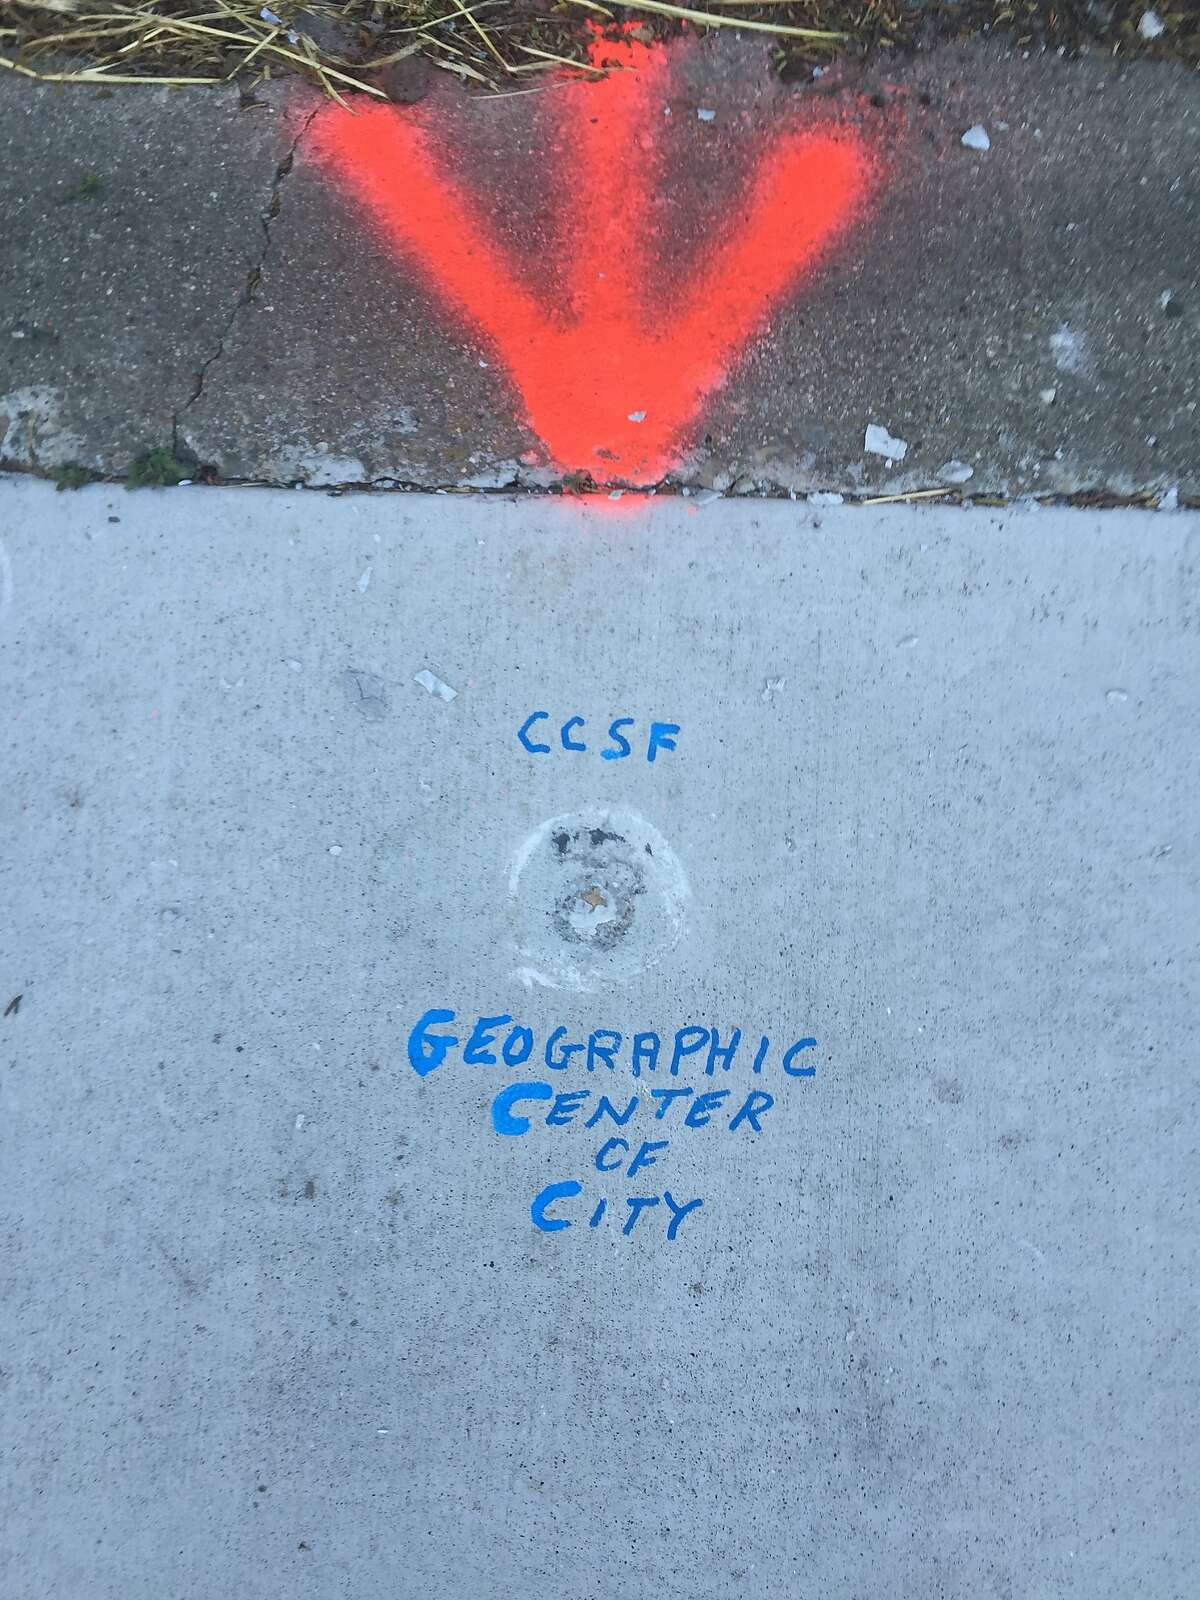 The spot where a surveyor's brass disc briefly marked the geographic center of San Francisco.